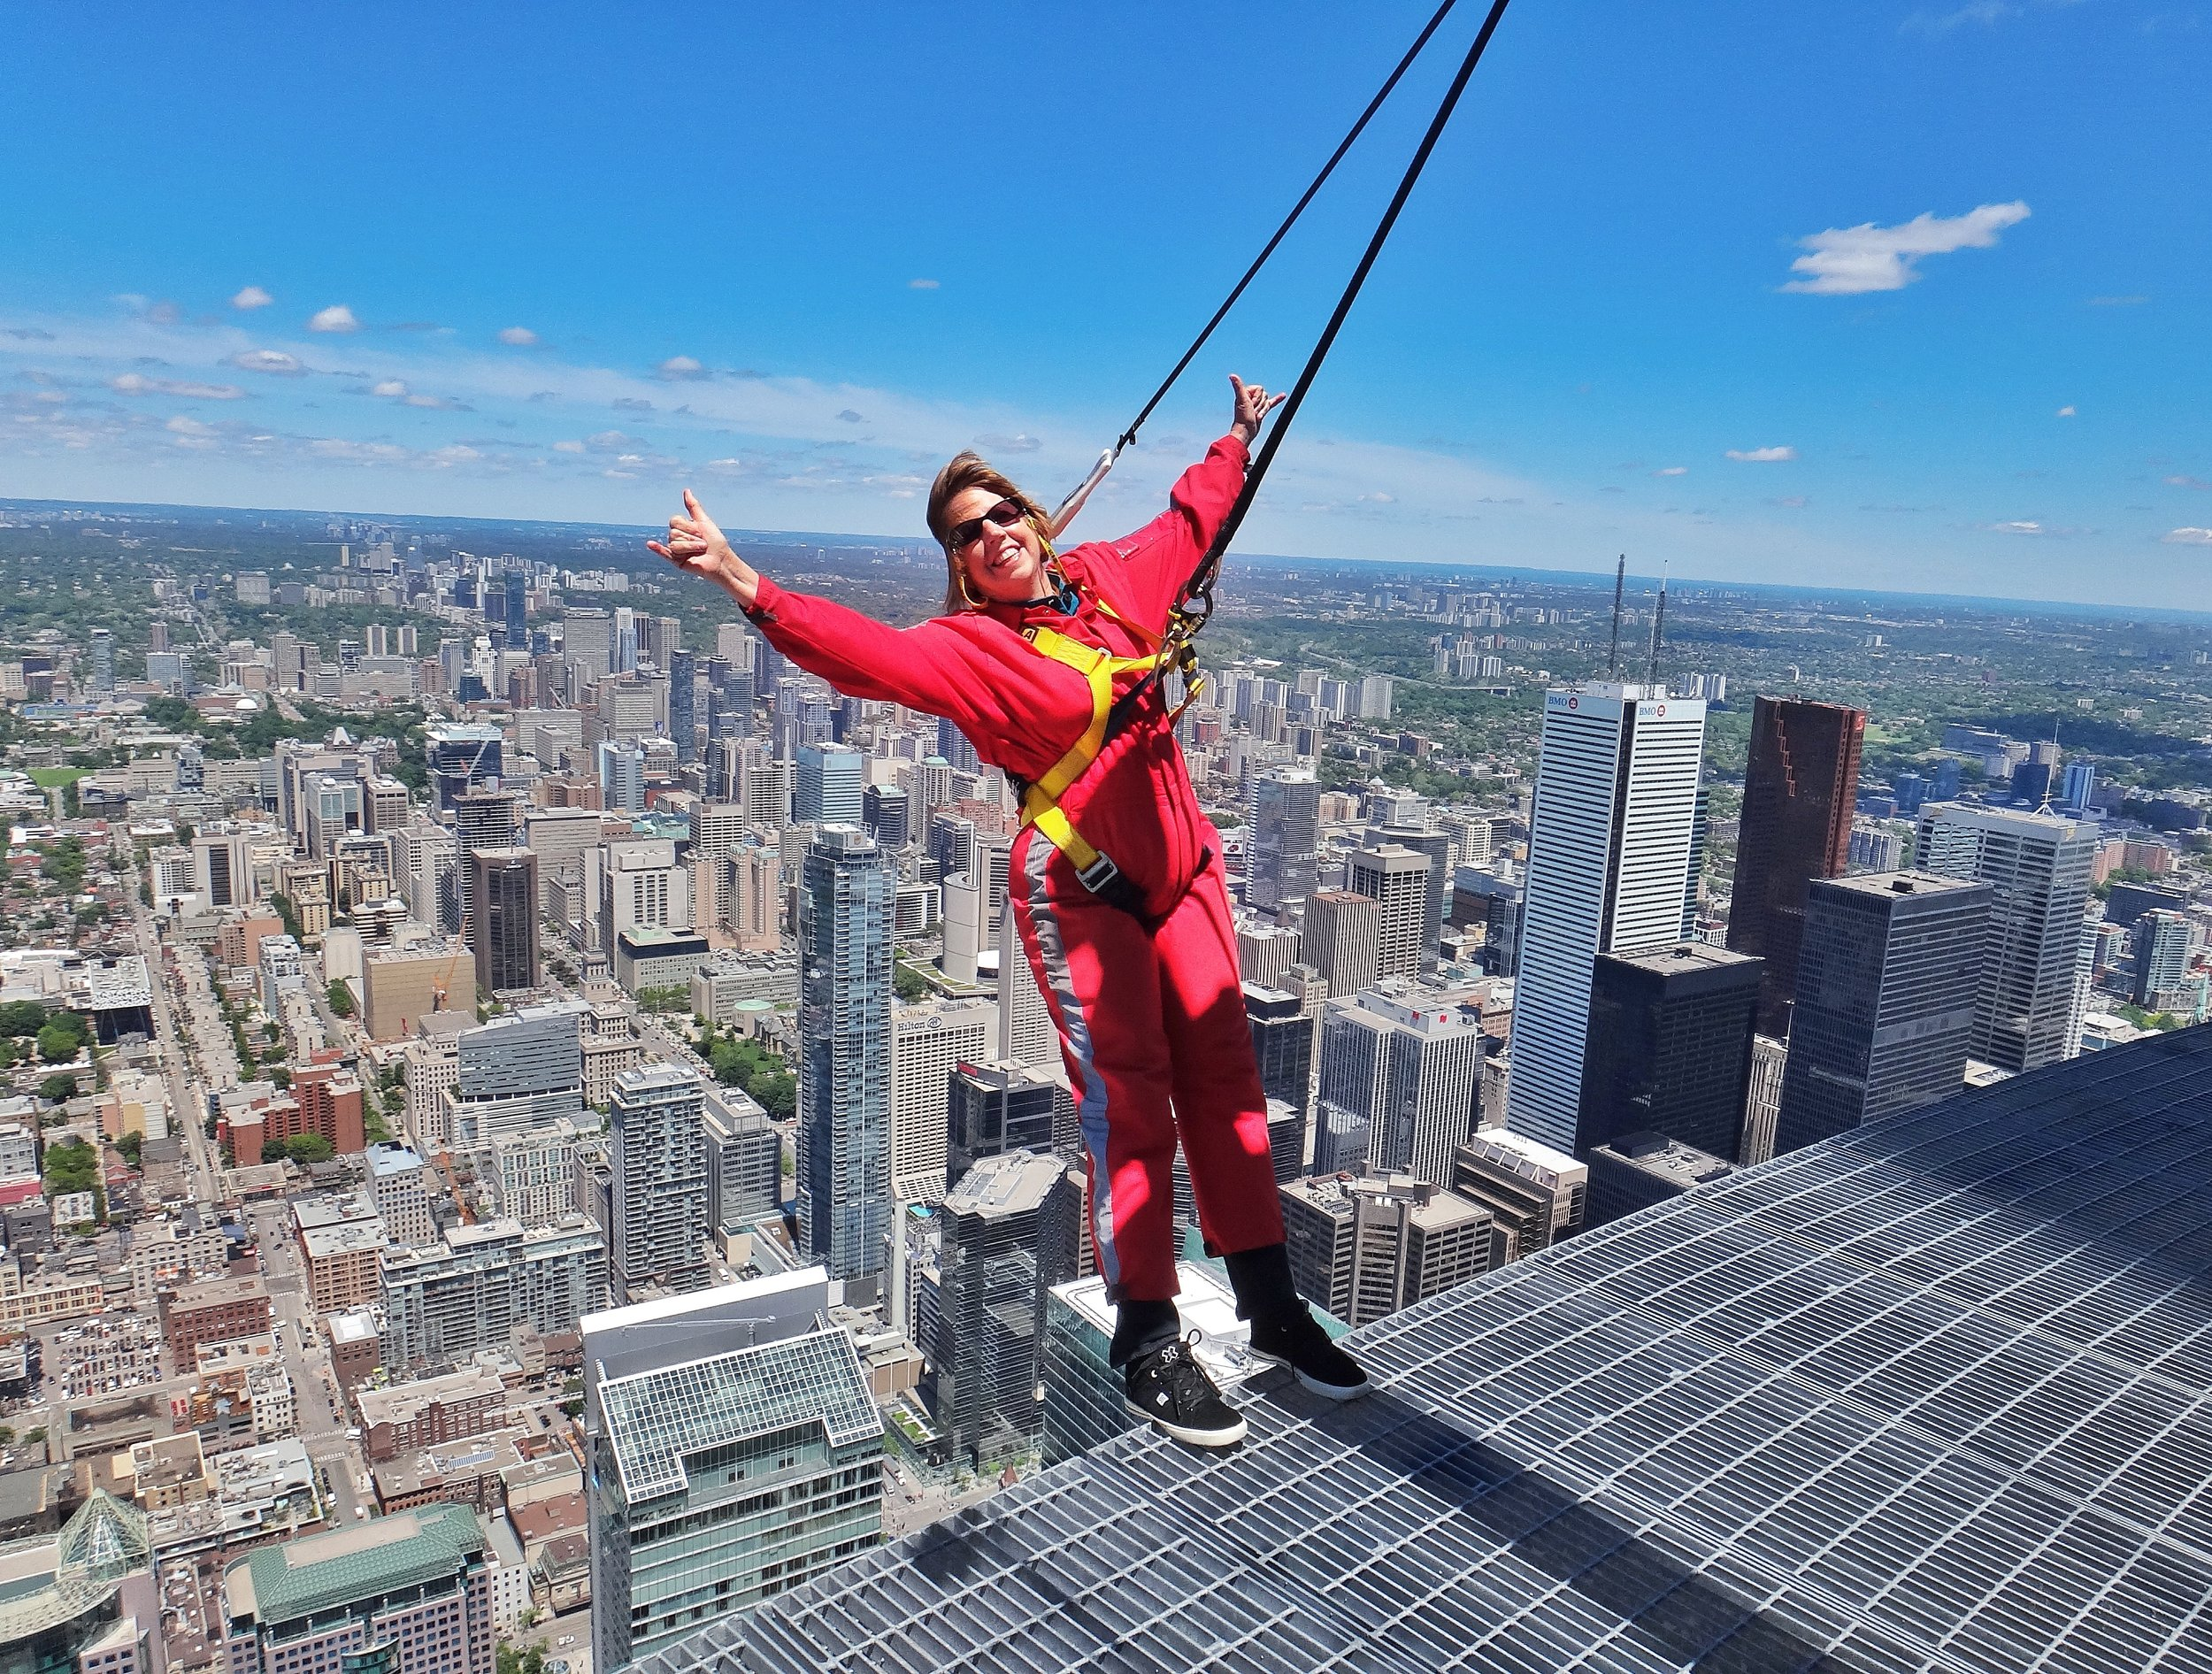 Hanging loose above downtown Toronto.